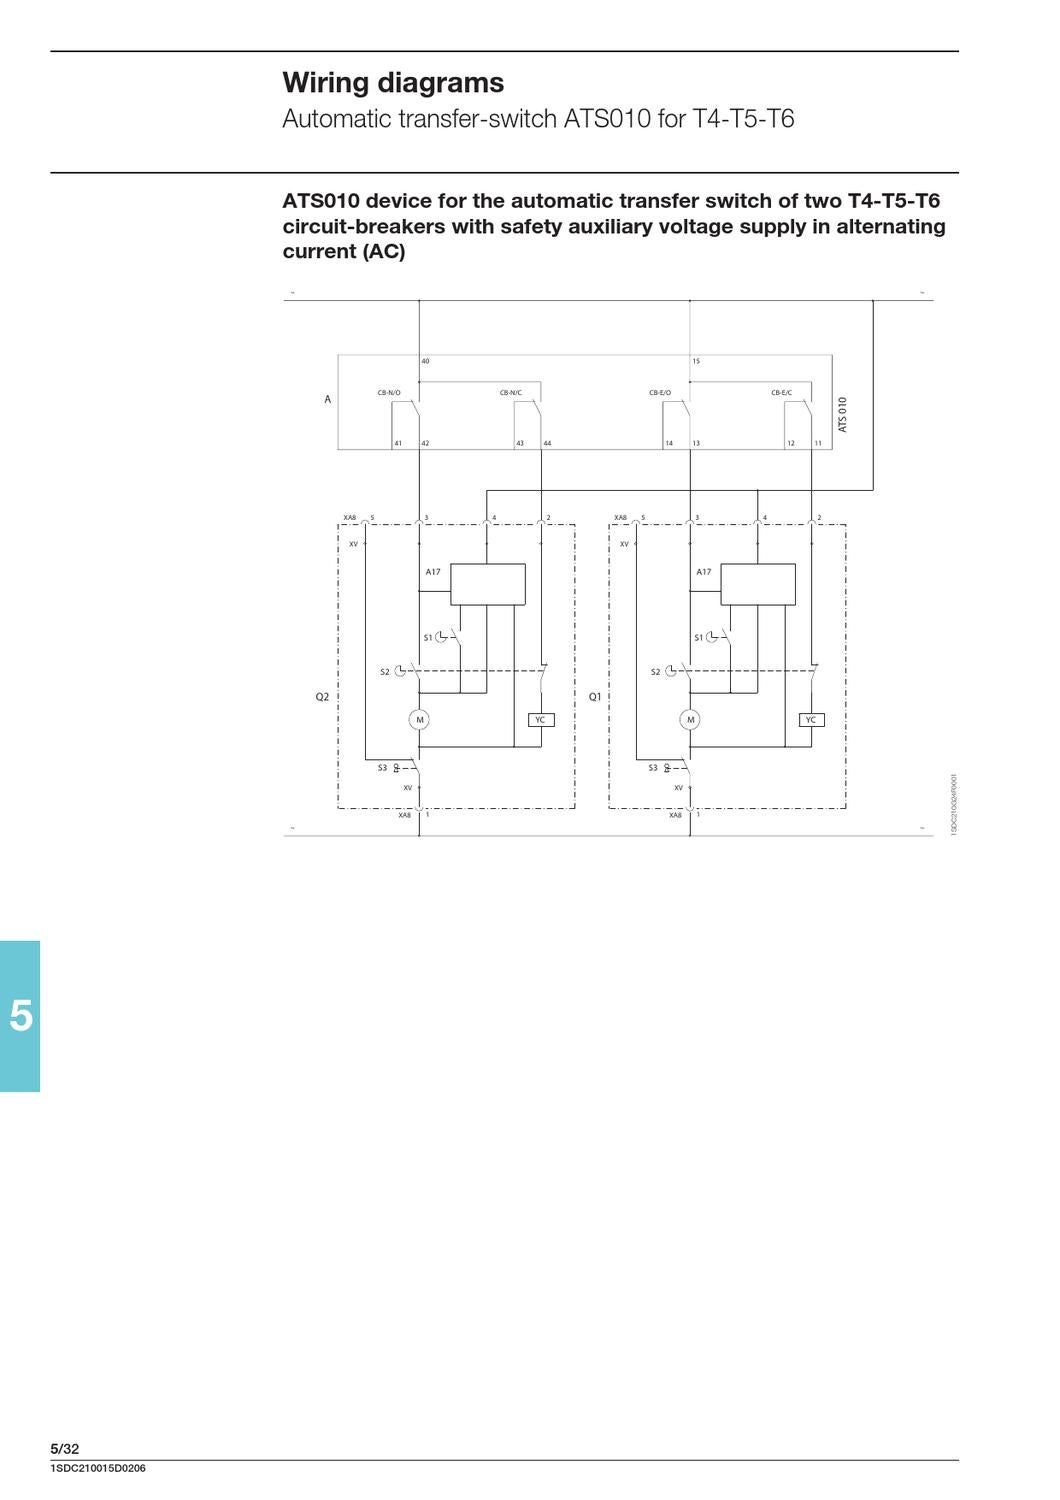 abb wiring diagrams abb t max by orion grup issuu  abb t max by orion grup issuu